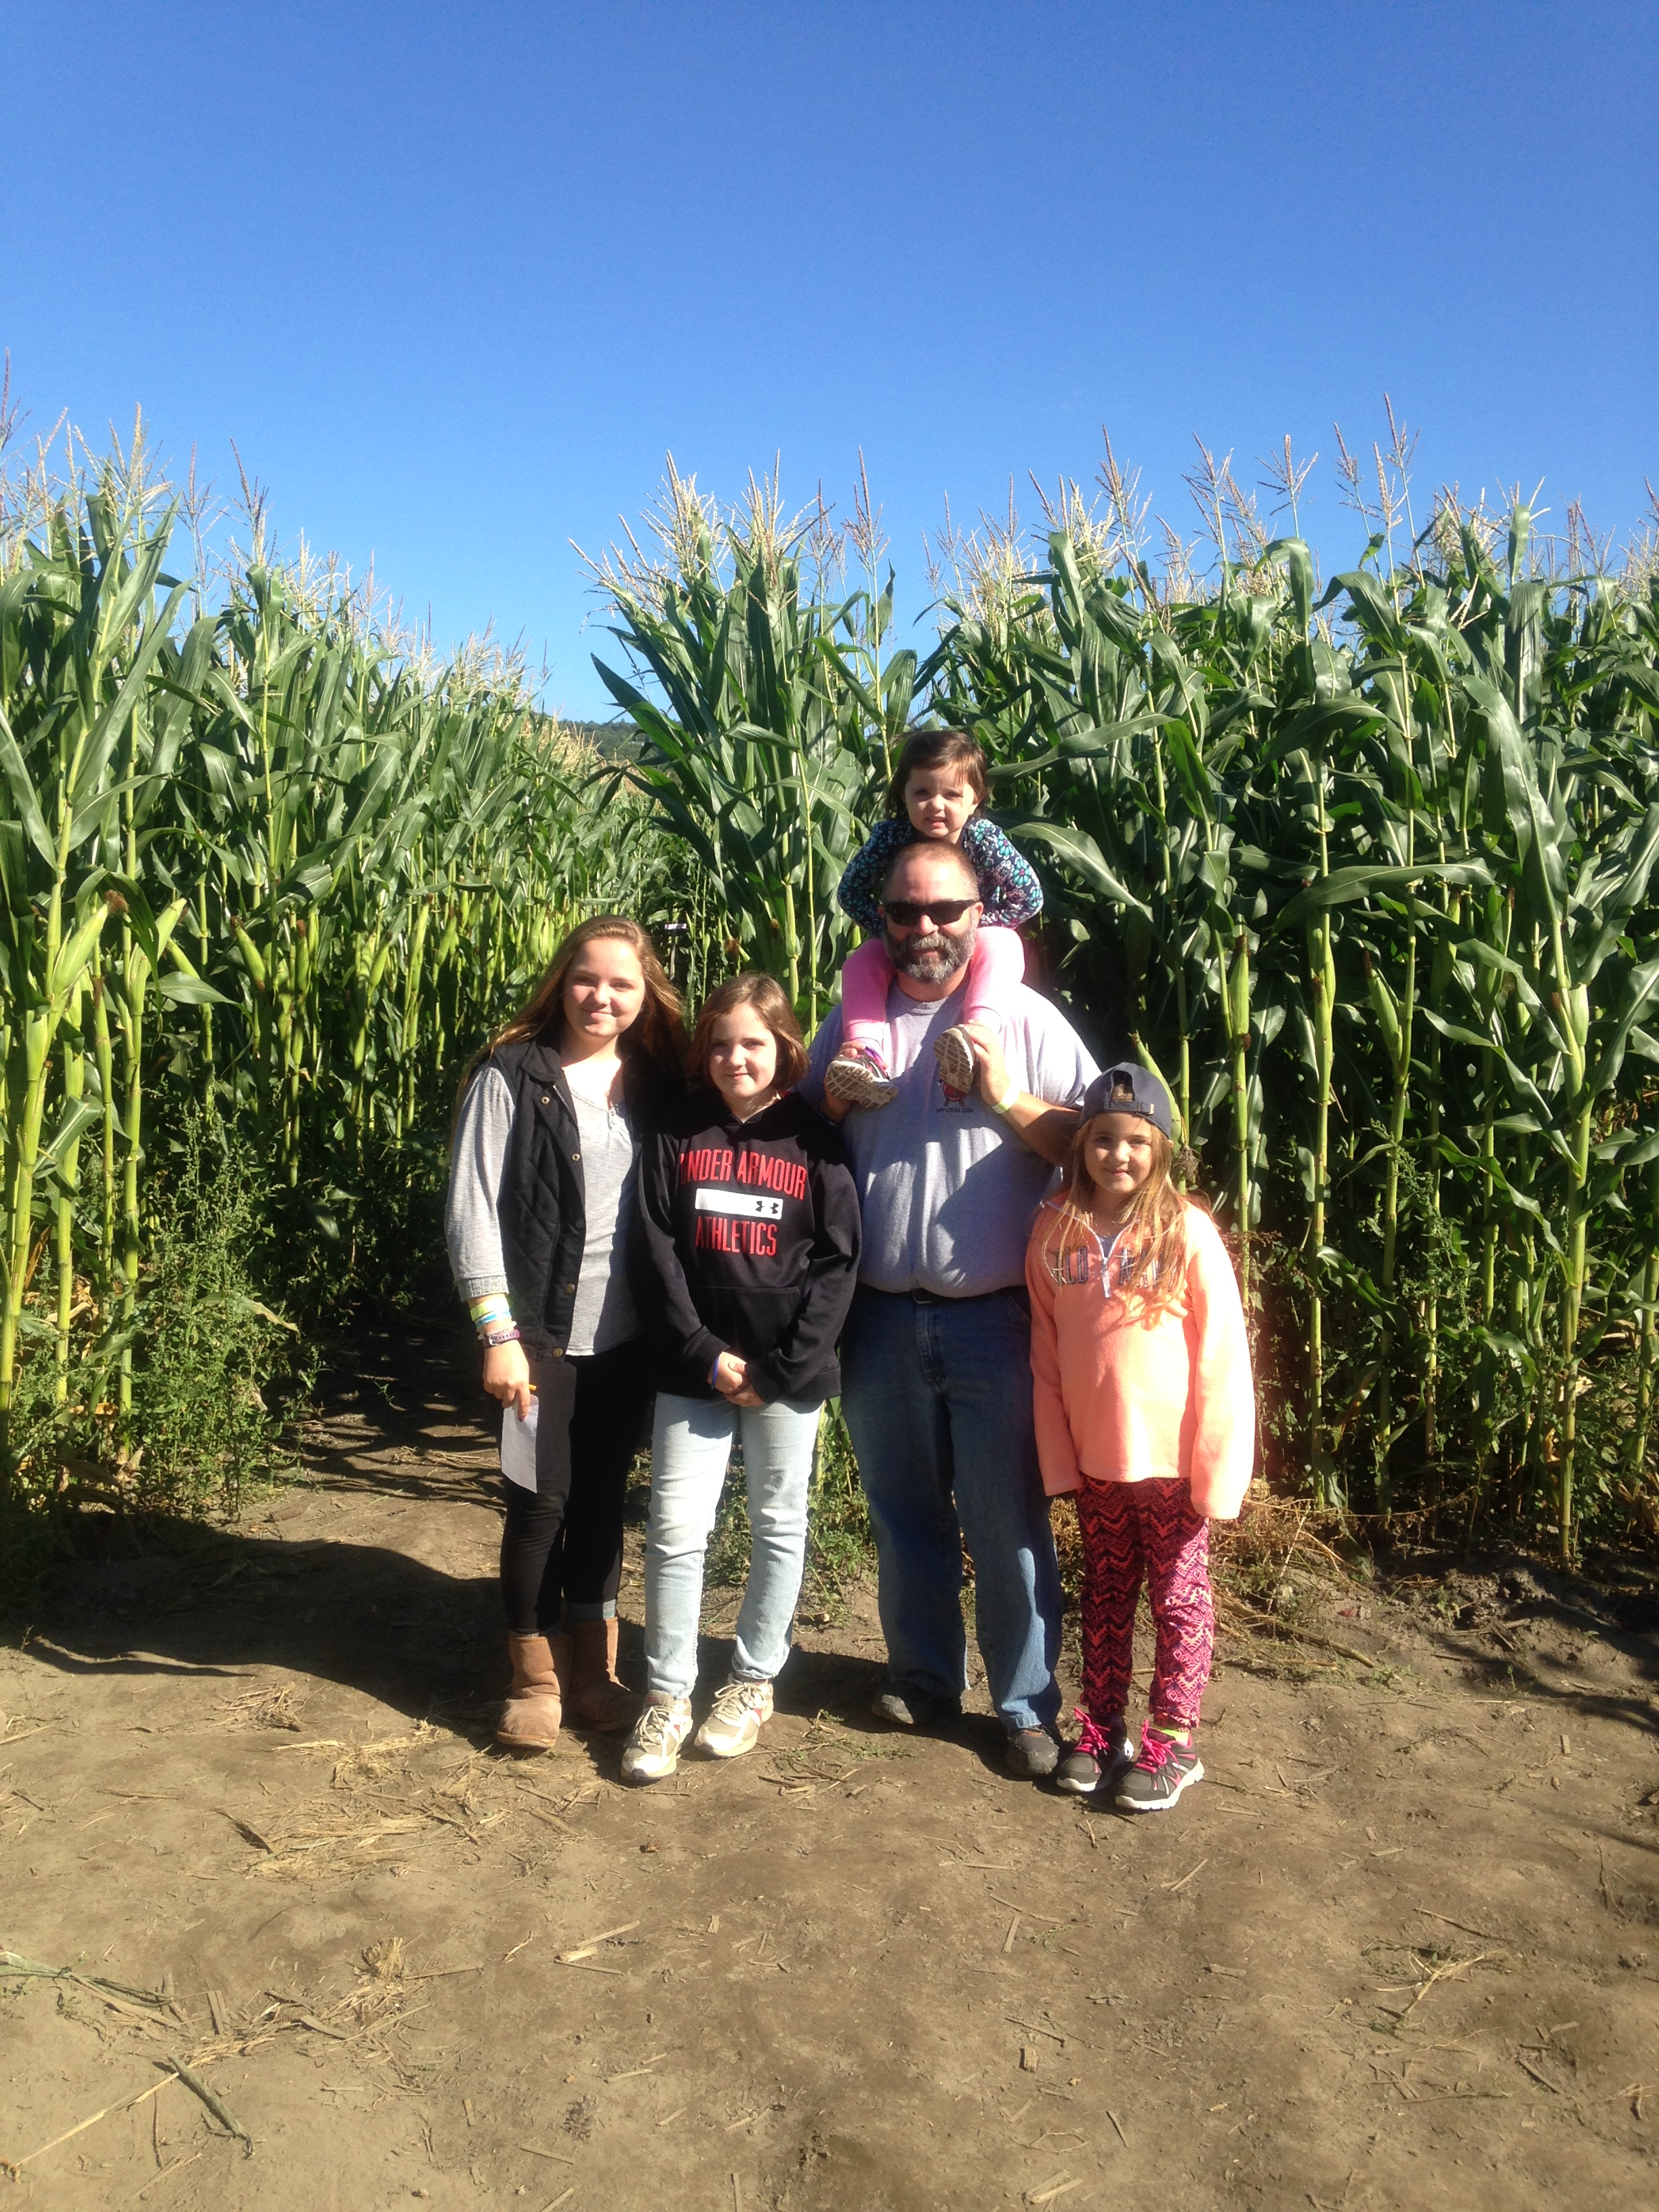 Beans & Greens Farm - cornmaze family kids